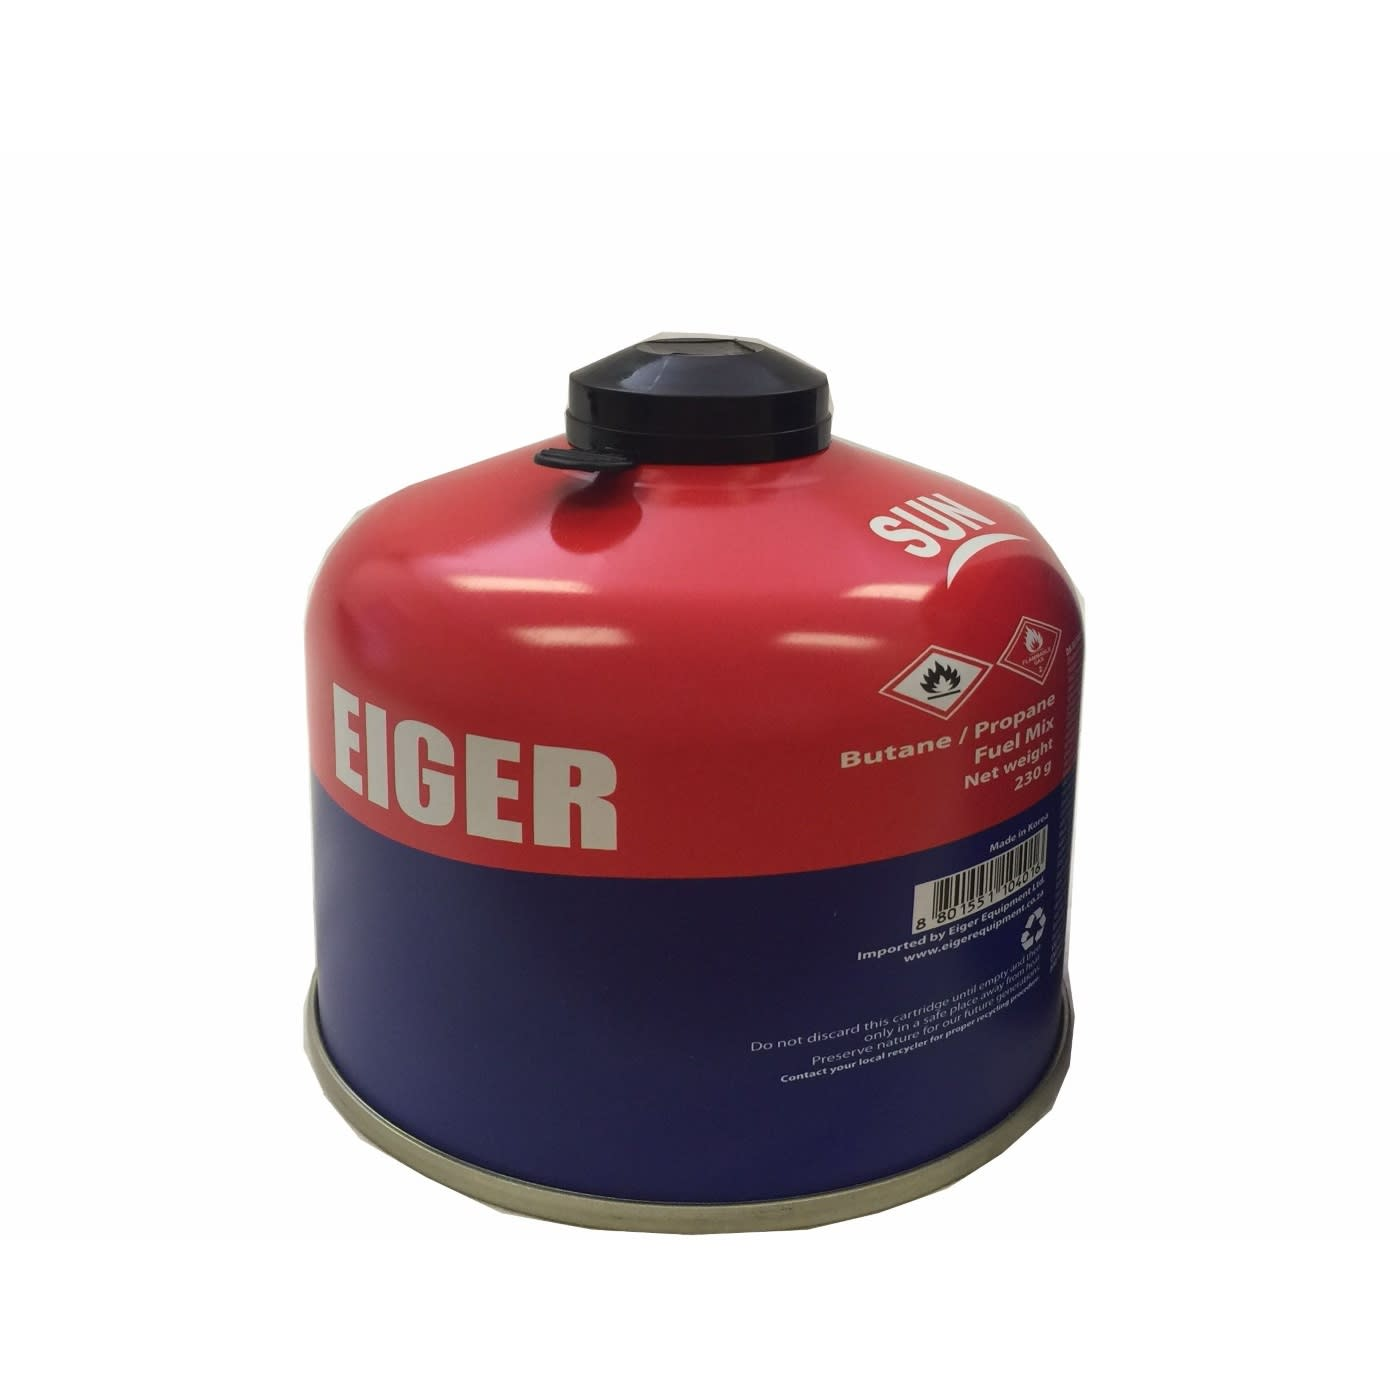 Eiger 230g Gas Canister